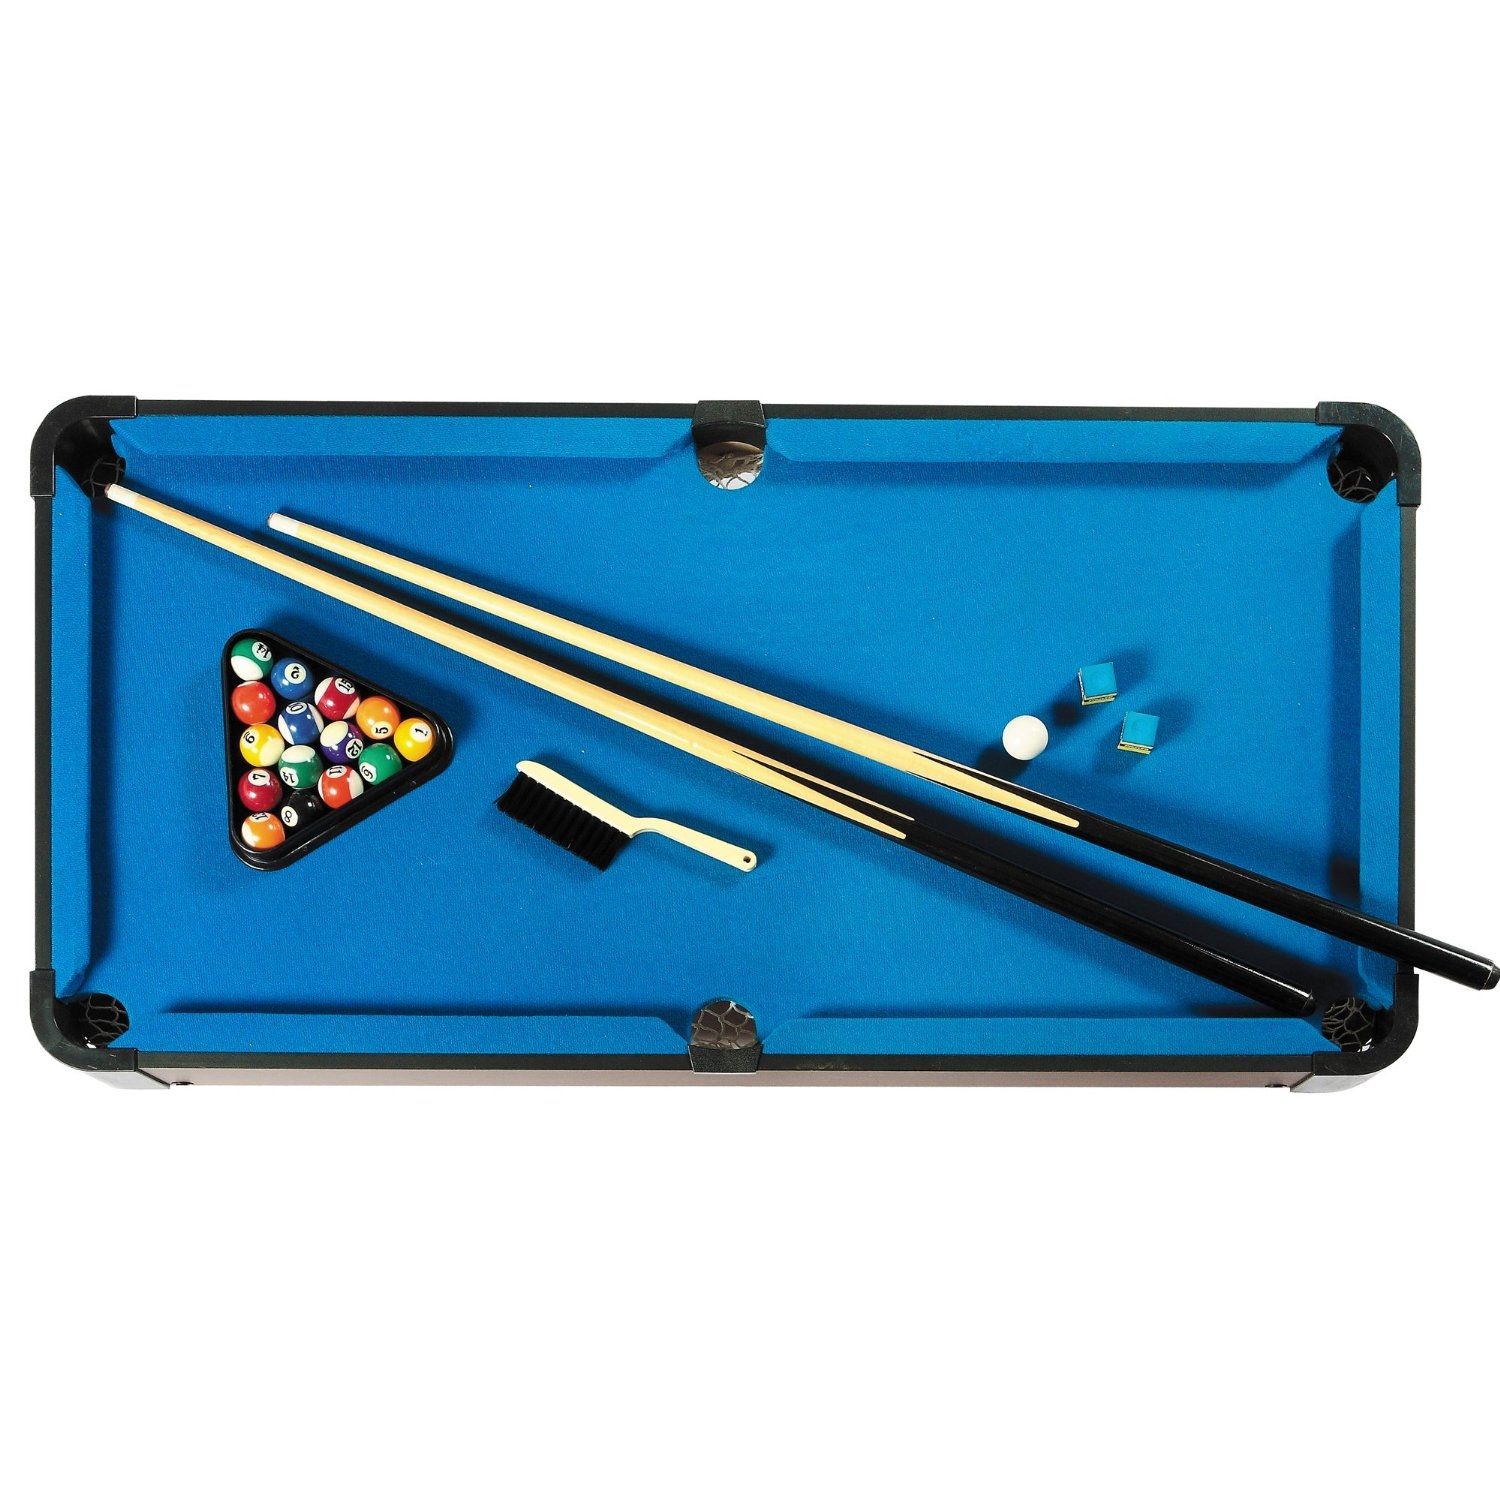 Inch Pool Table With Blue Felt Surface Cues And Billiard Balls - 40 inch pool table